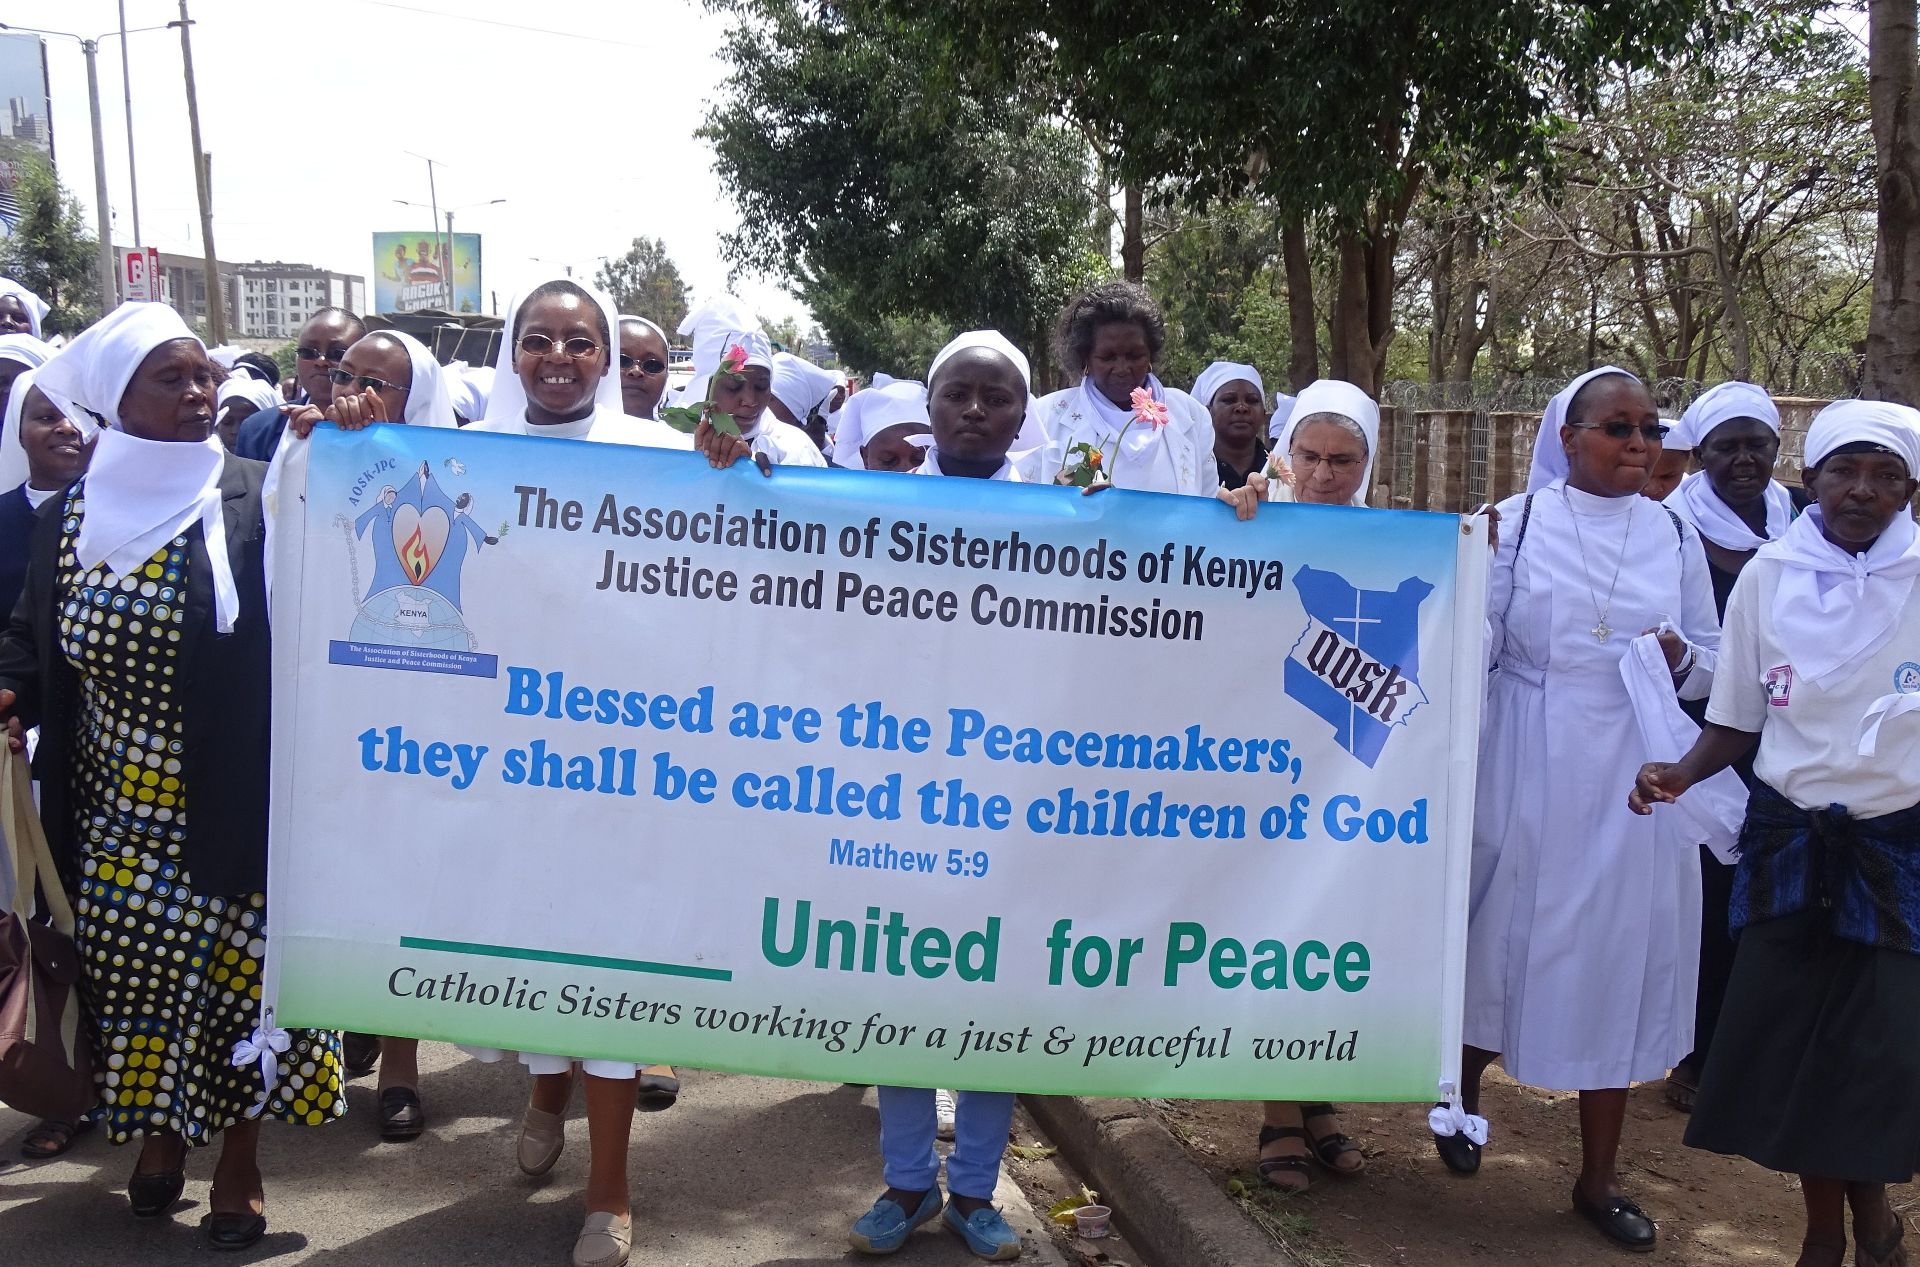 Catholic Sisters working for a just and Peaceful World